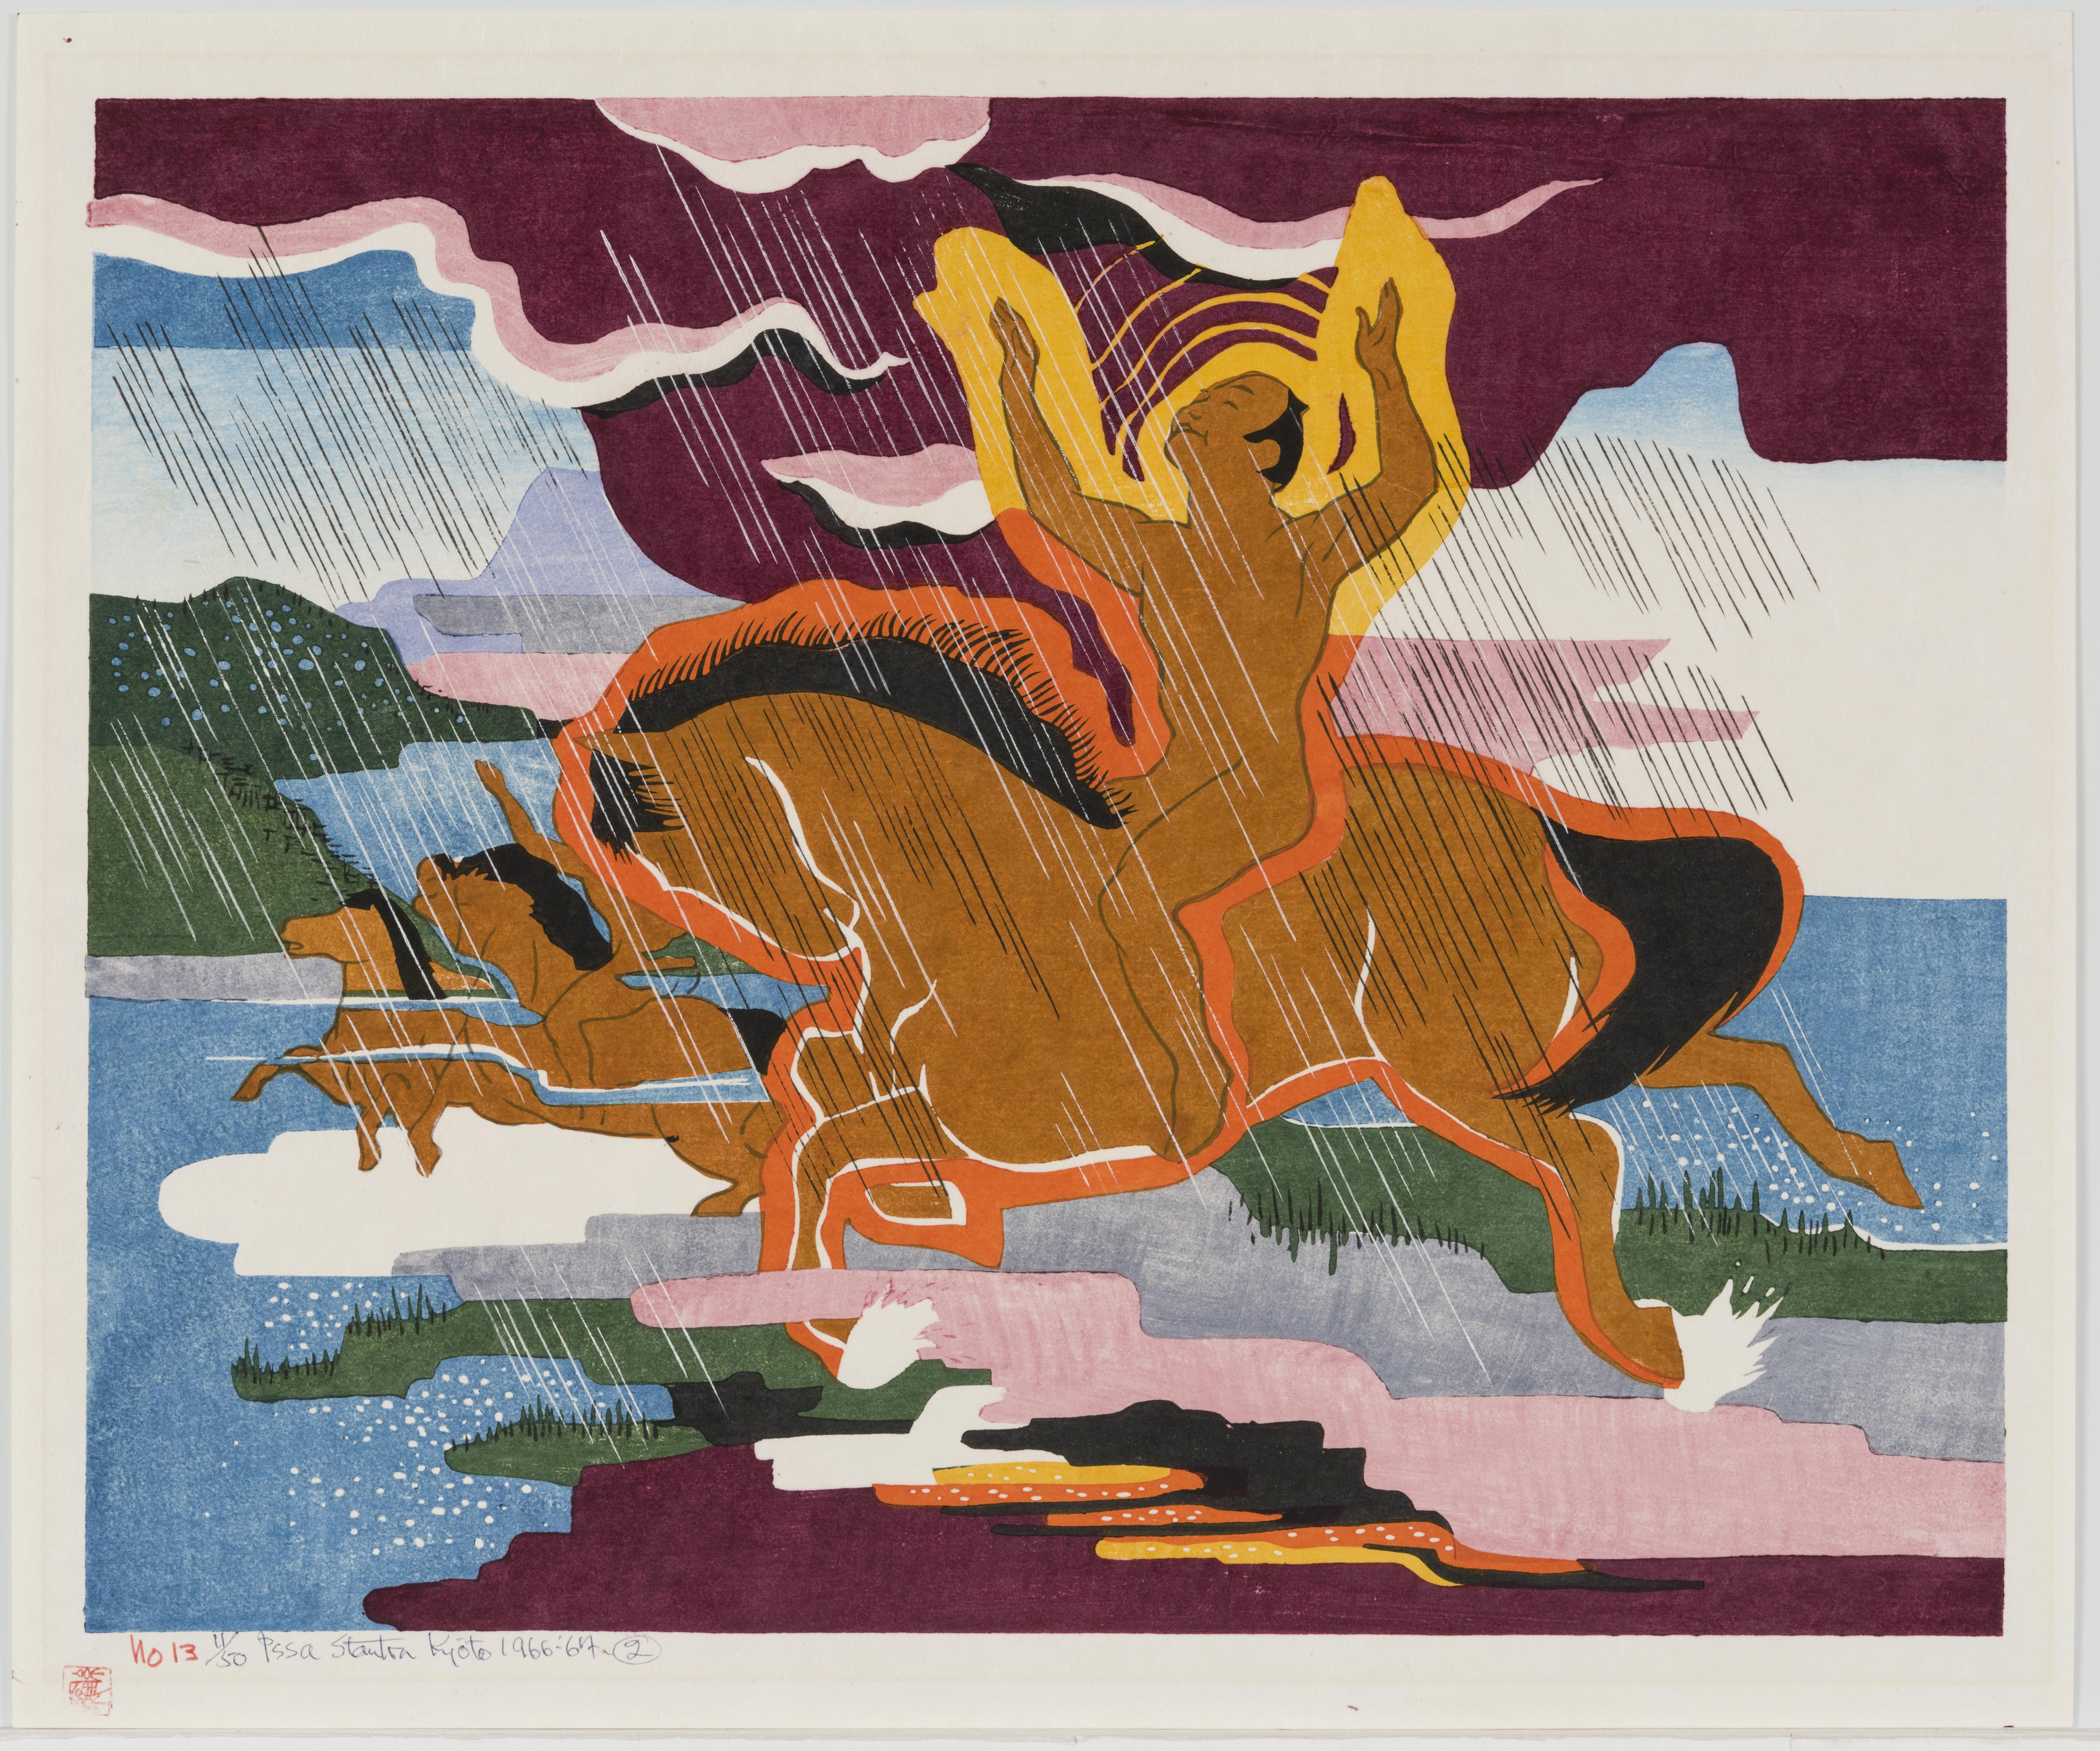 Stanton Macdonald-Wright, Naked in the rain riding a naked horse, 1966-1967